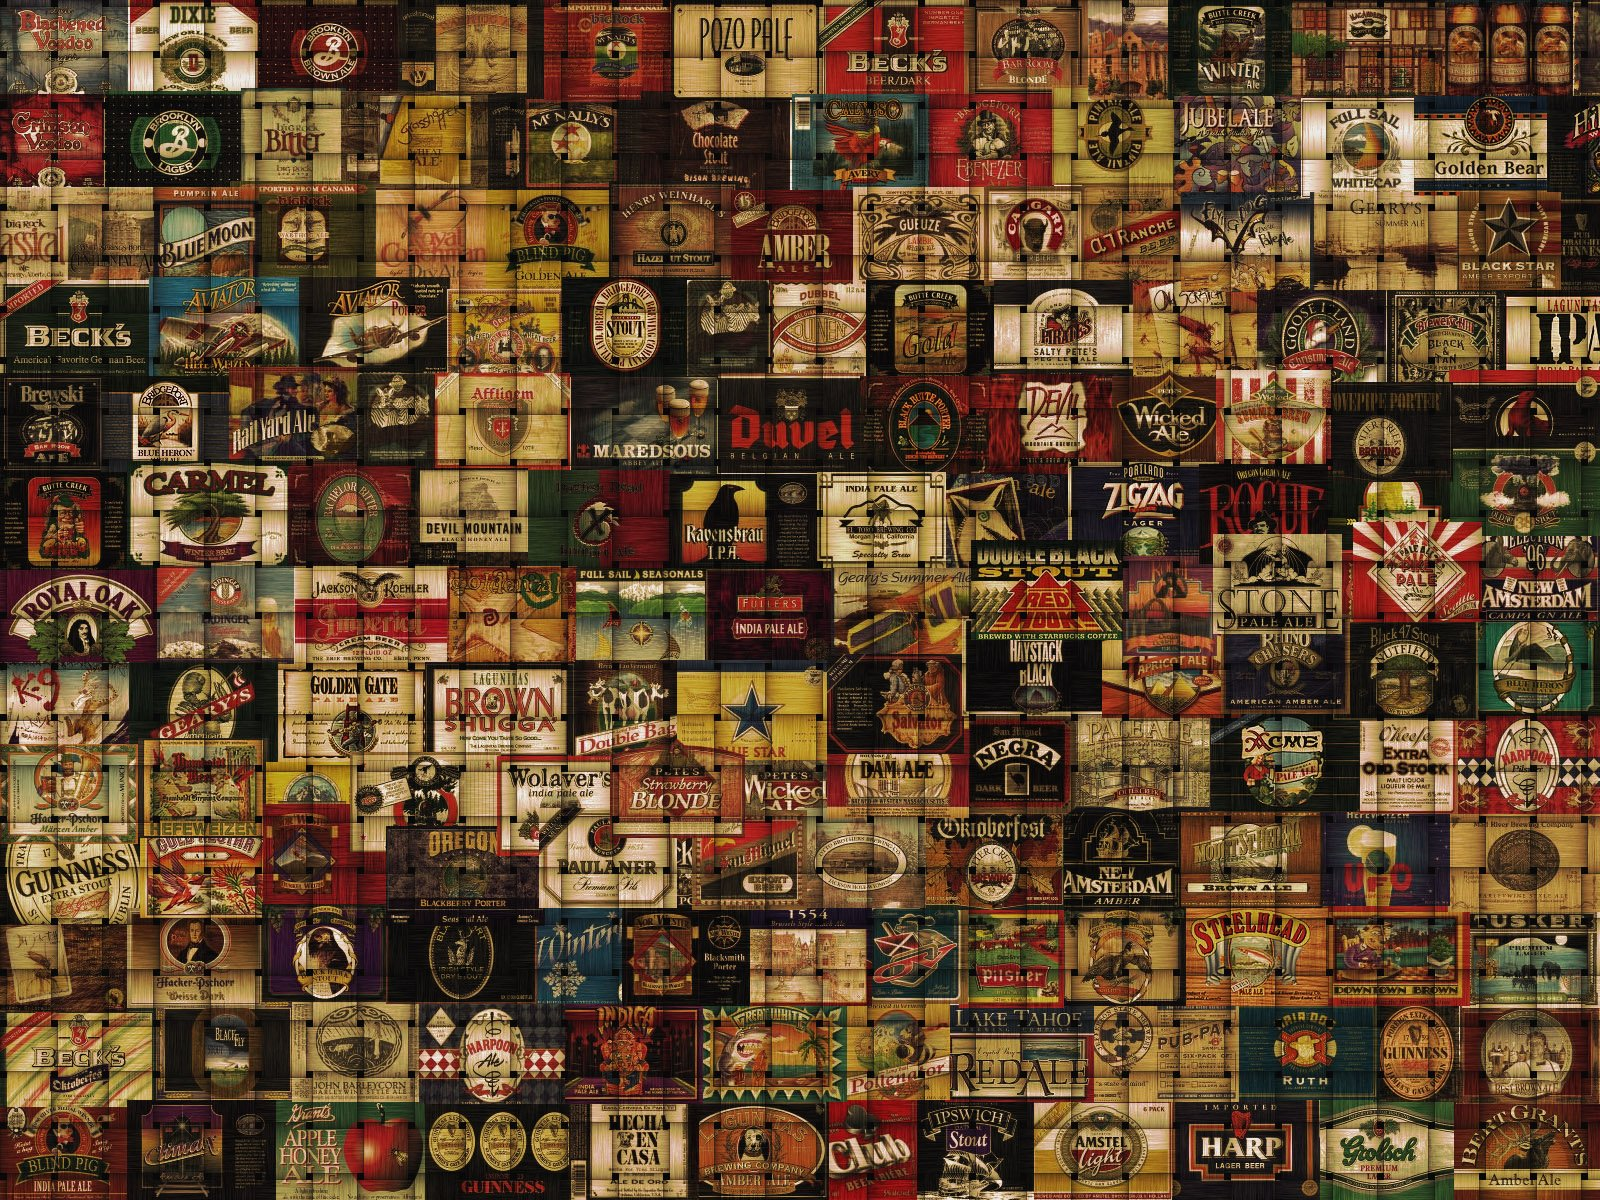 beer alcohol drink poster collage tile tiles wallpaper 1600x1200 334825 wallpaperup. Black Bedroom Furniture Sets. Home Design Ideas